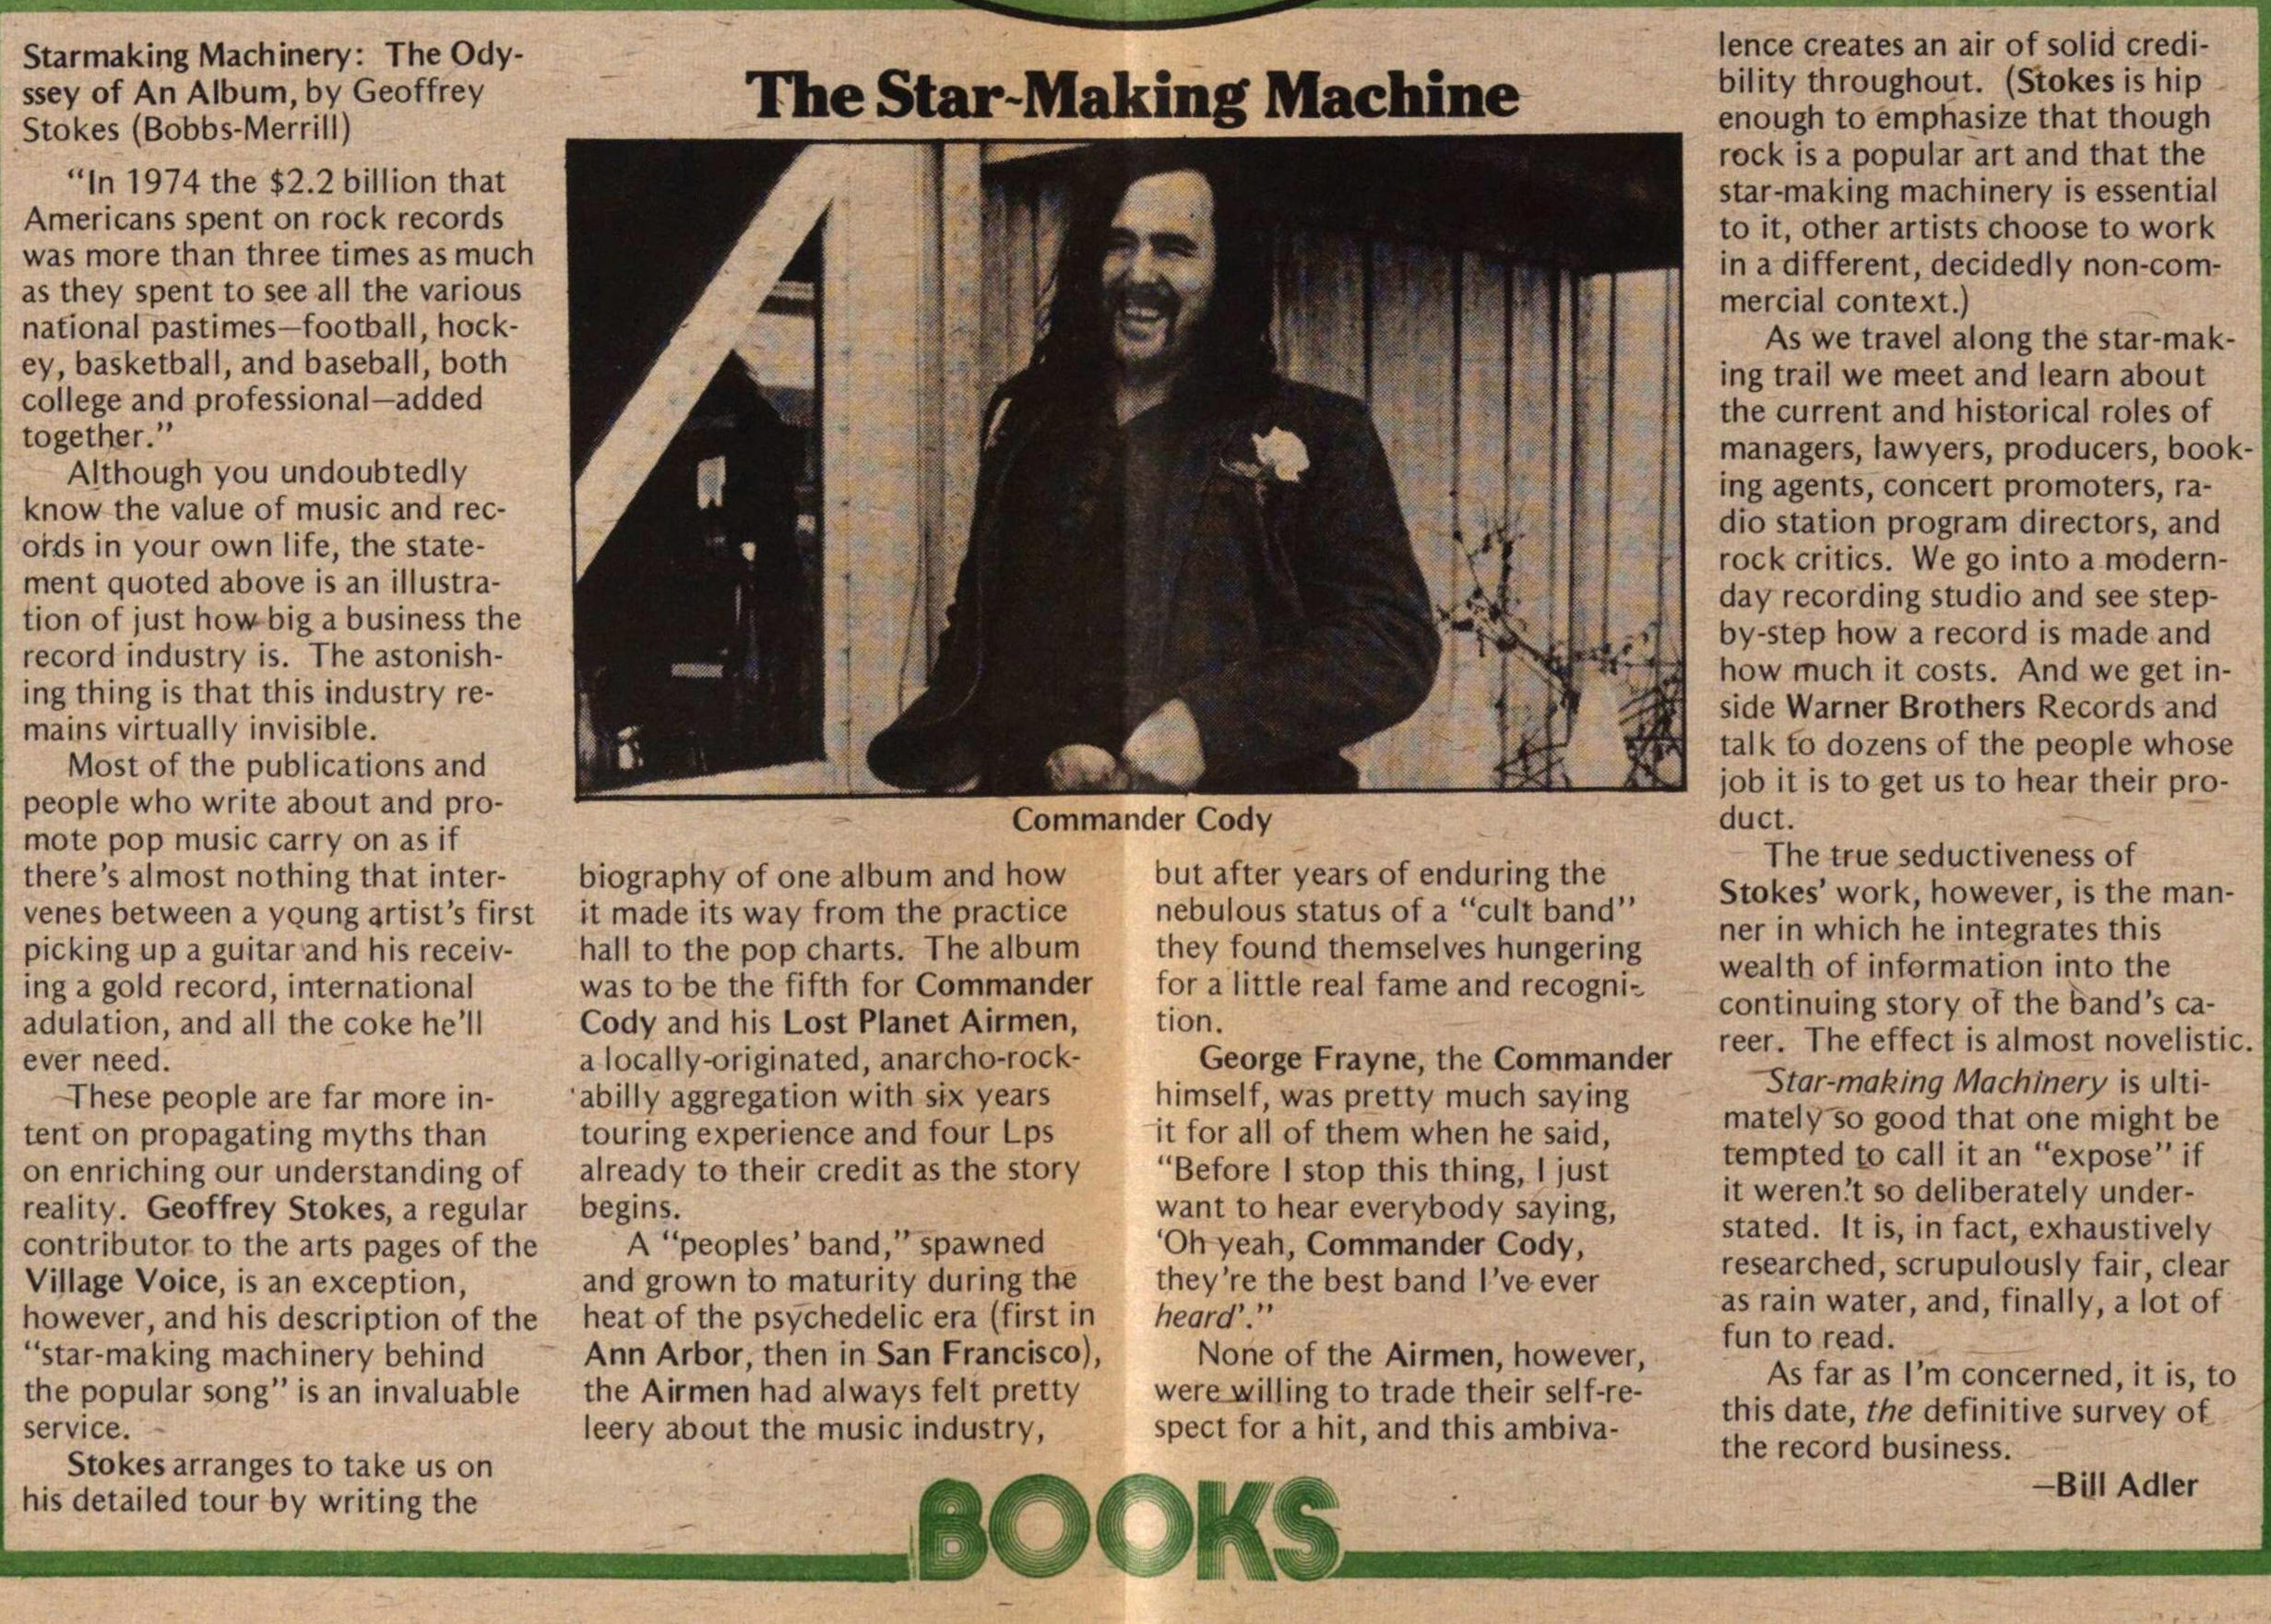 The Star Making Machine image